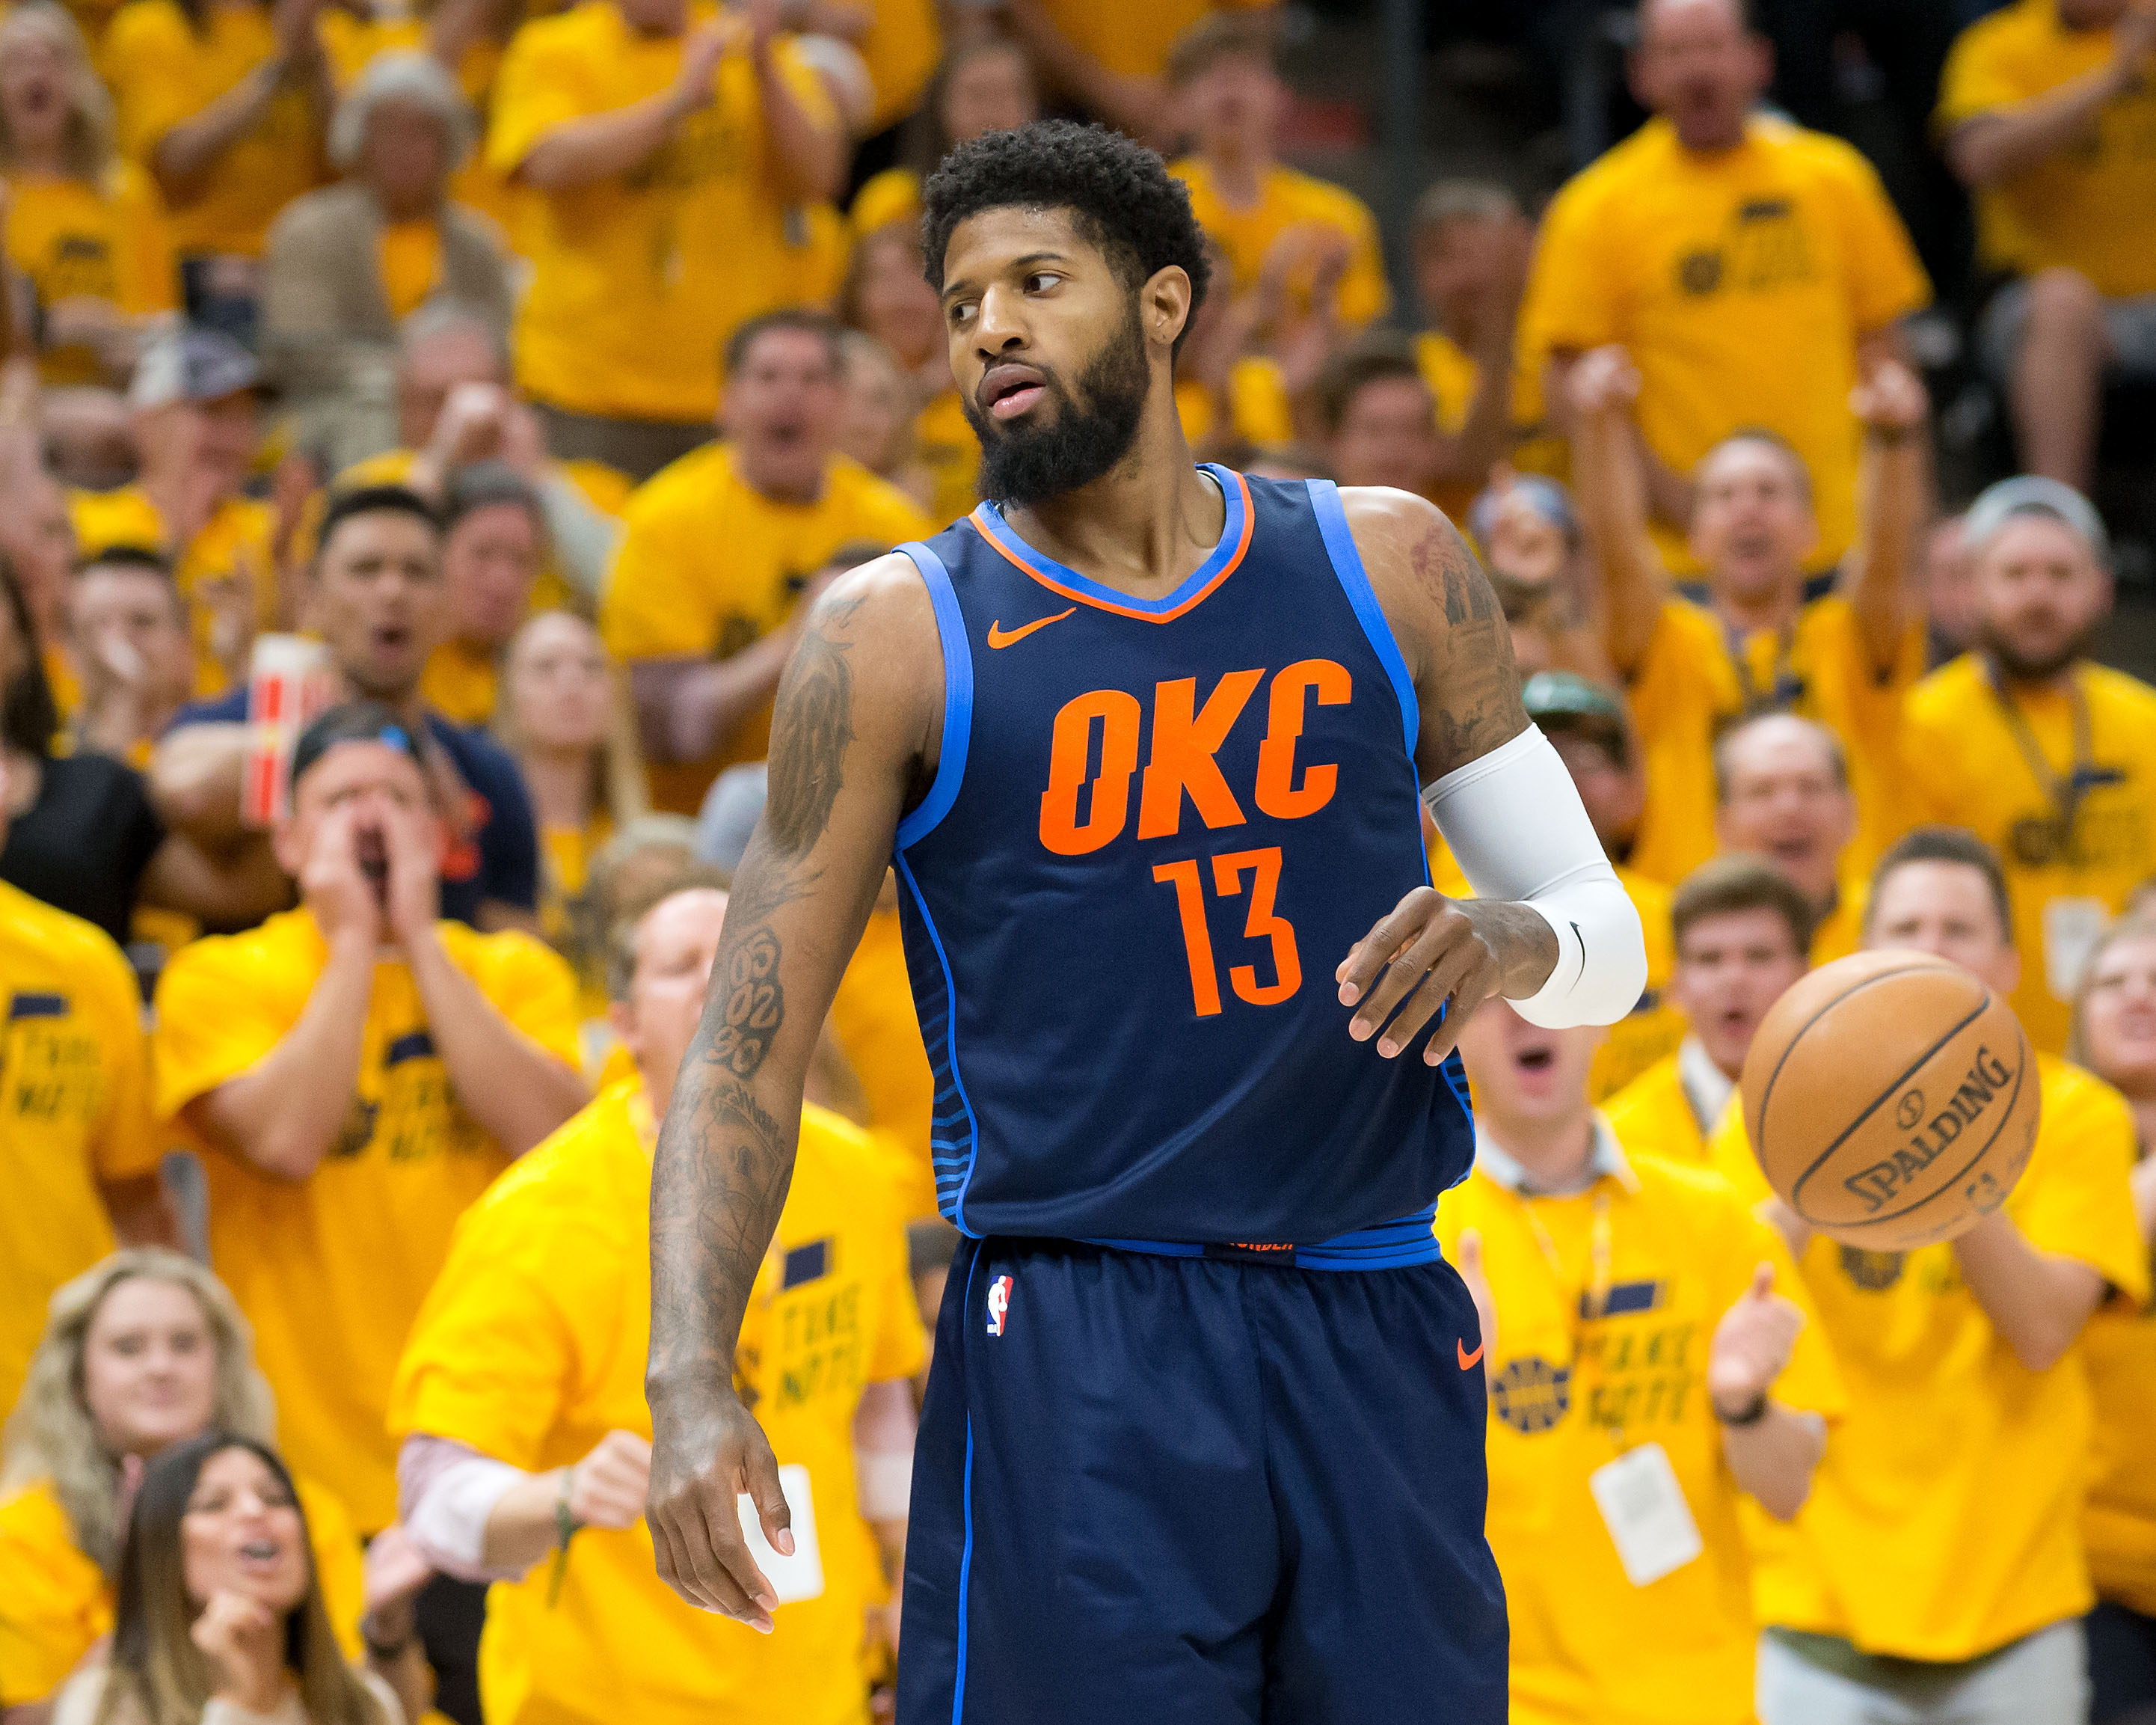 Paul George wants to 'put a Laker jersey on'